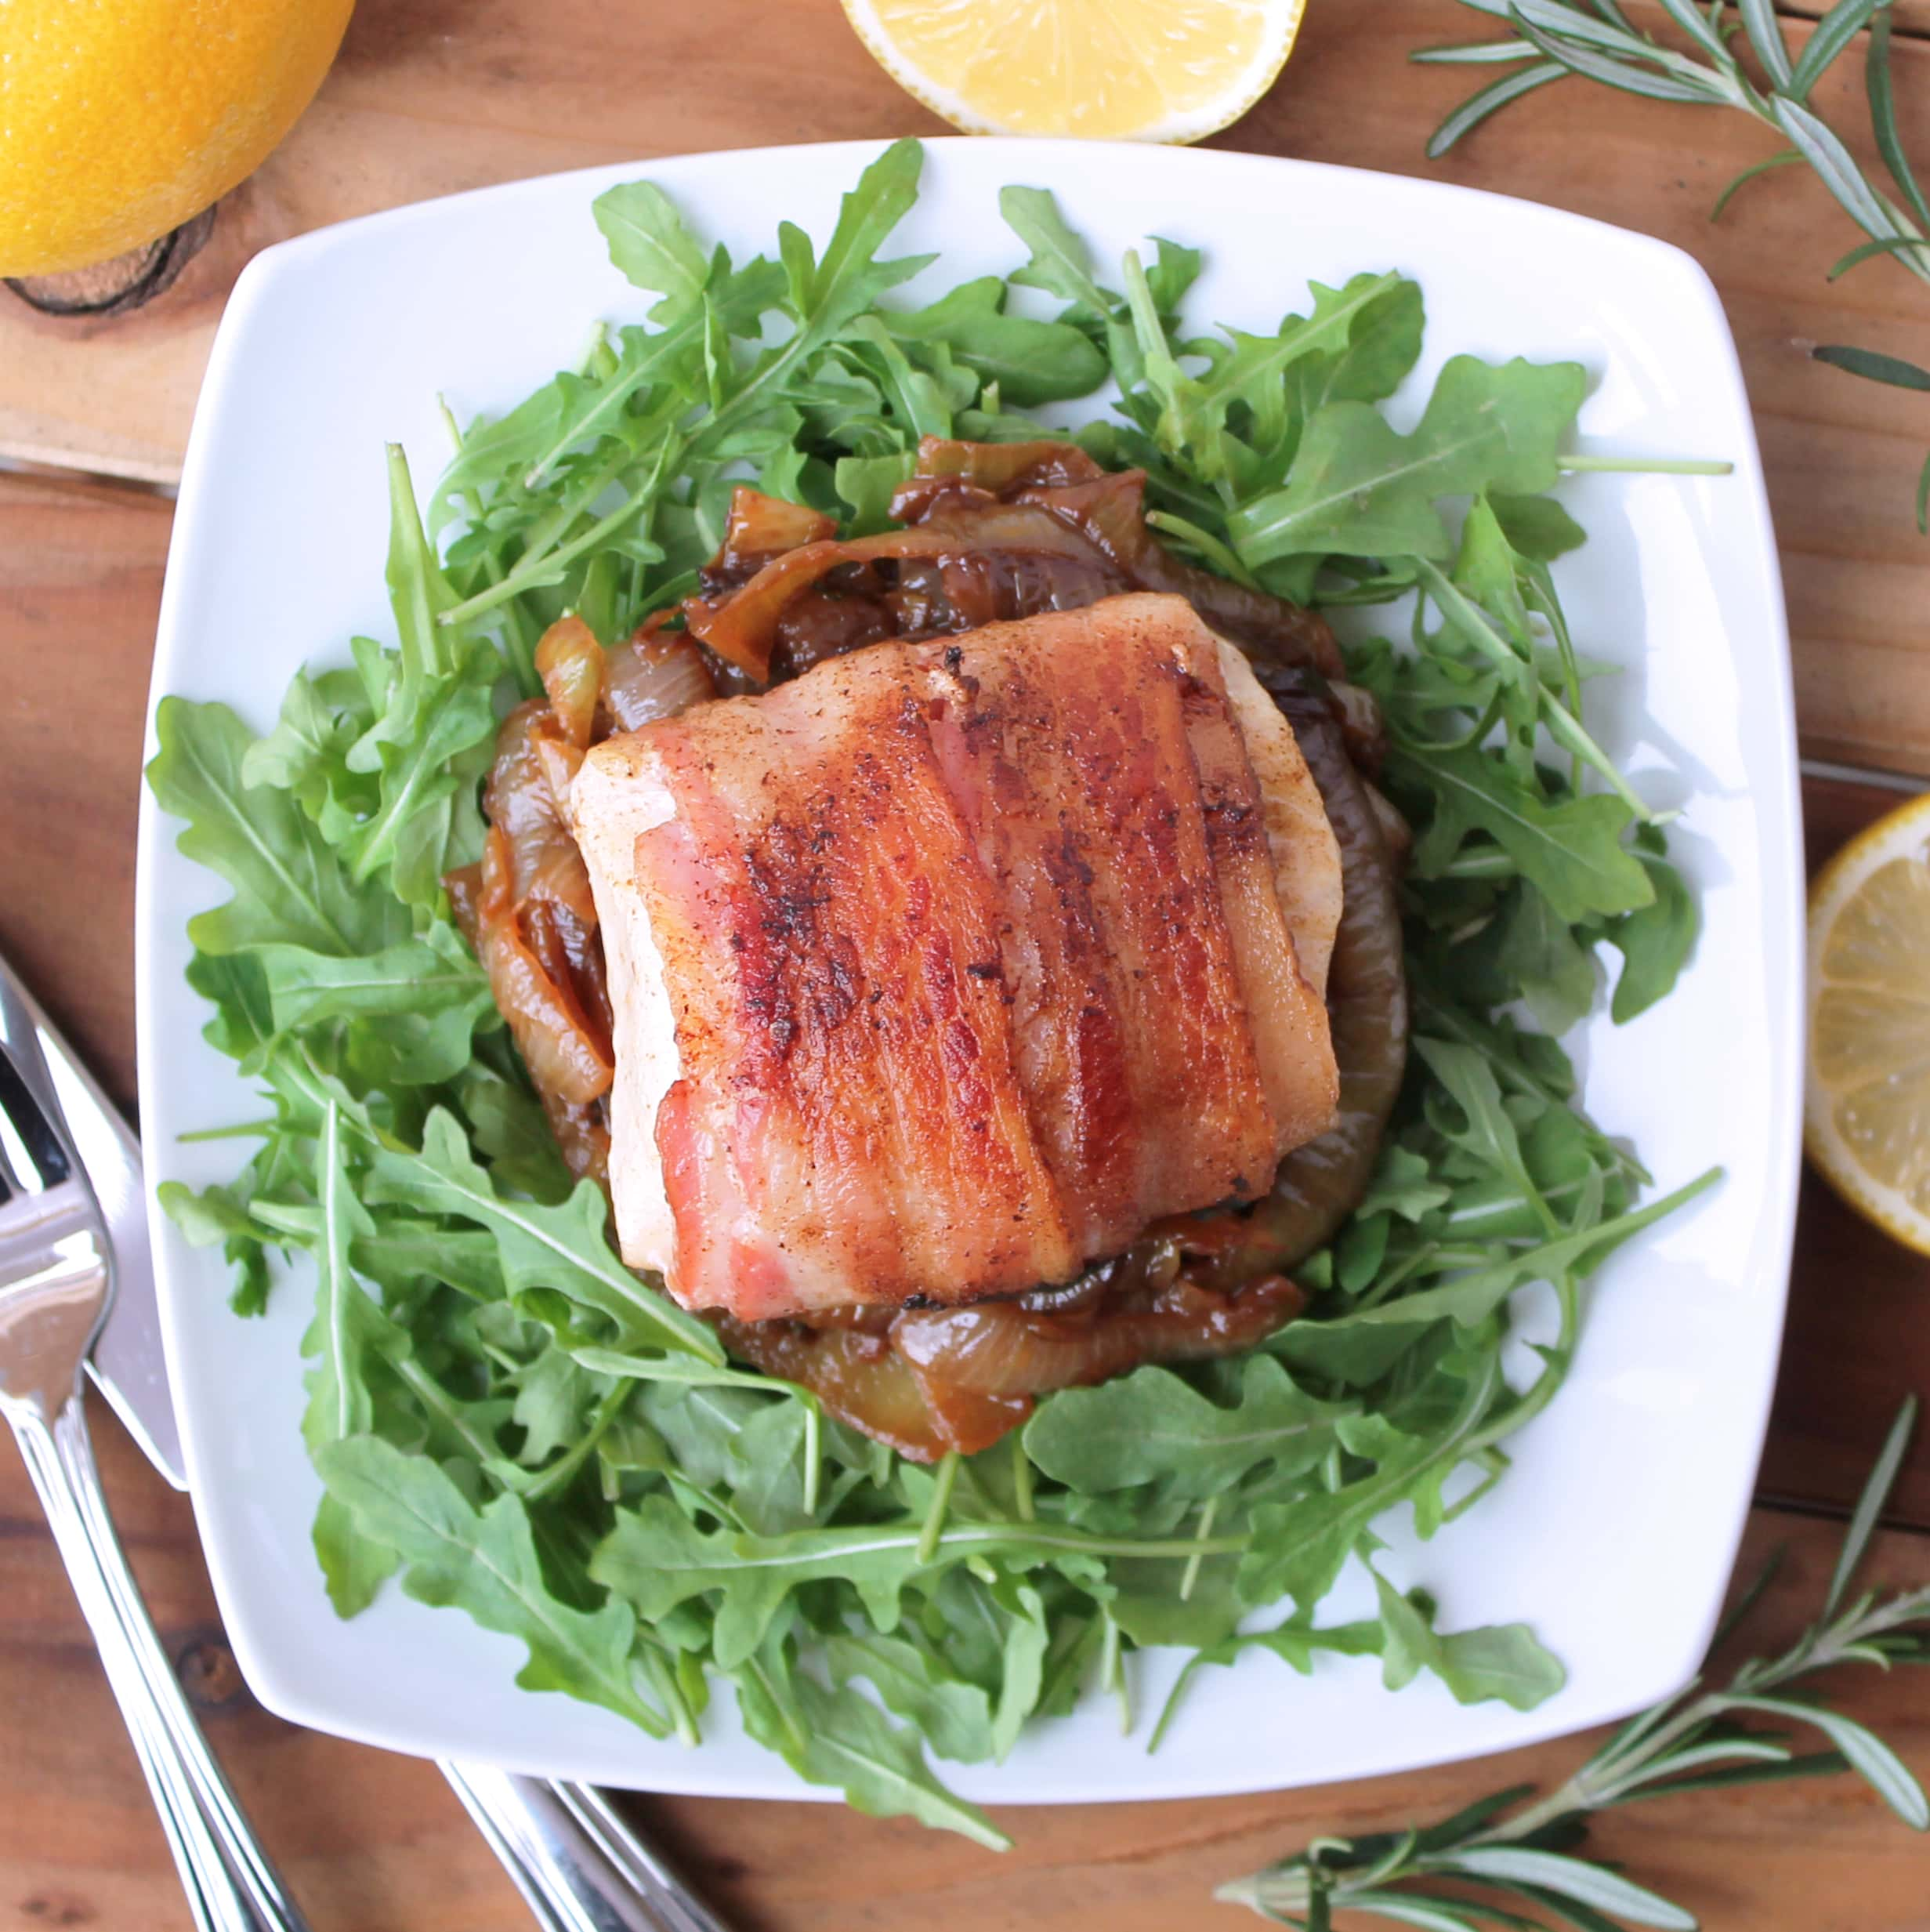 Bacon wrapped cobia fillets with rosemary caramelized for Cobia fish recipe